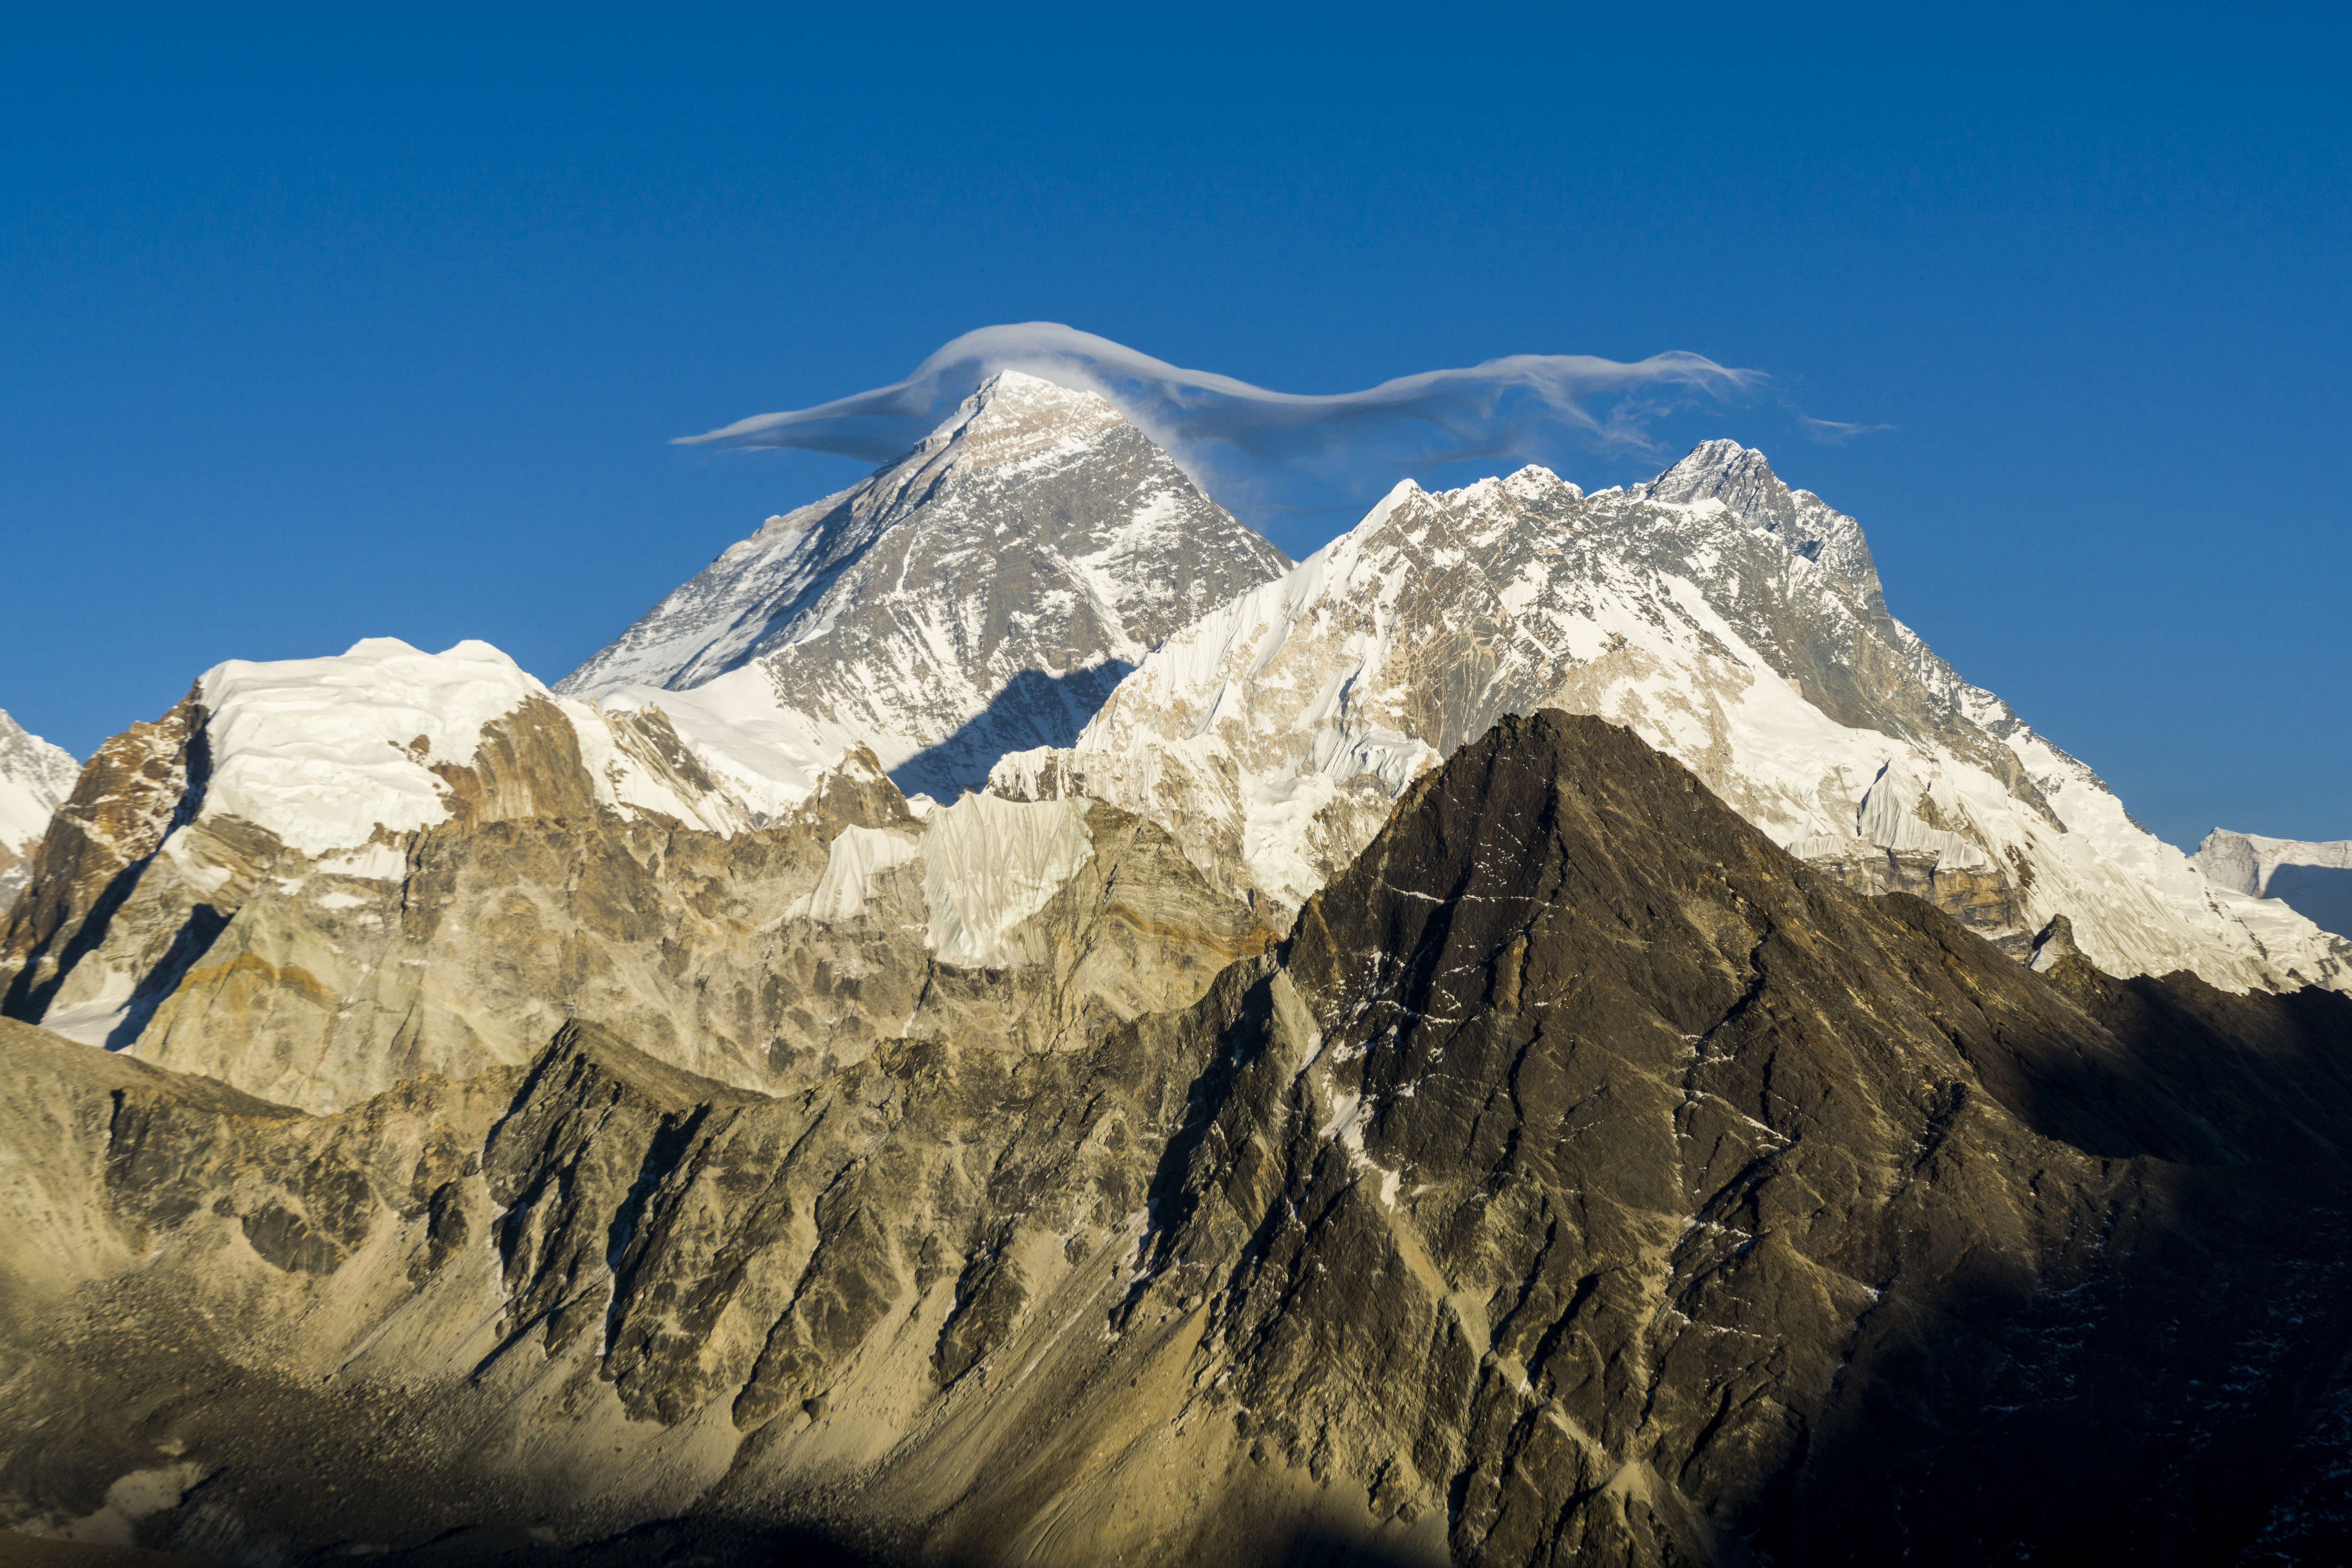 Mt. Everest  with a white cloud on top, seen from Gokyo Ri at sunset.